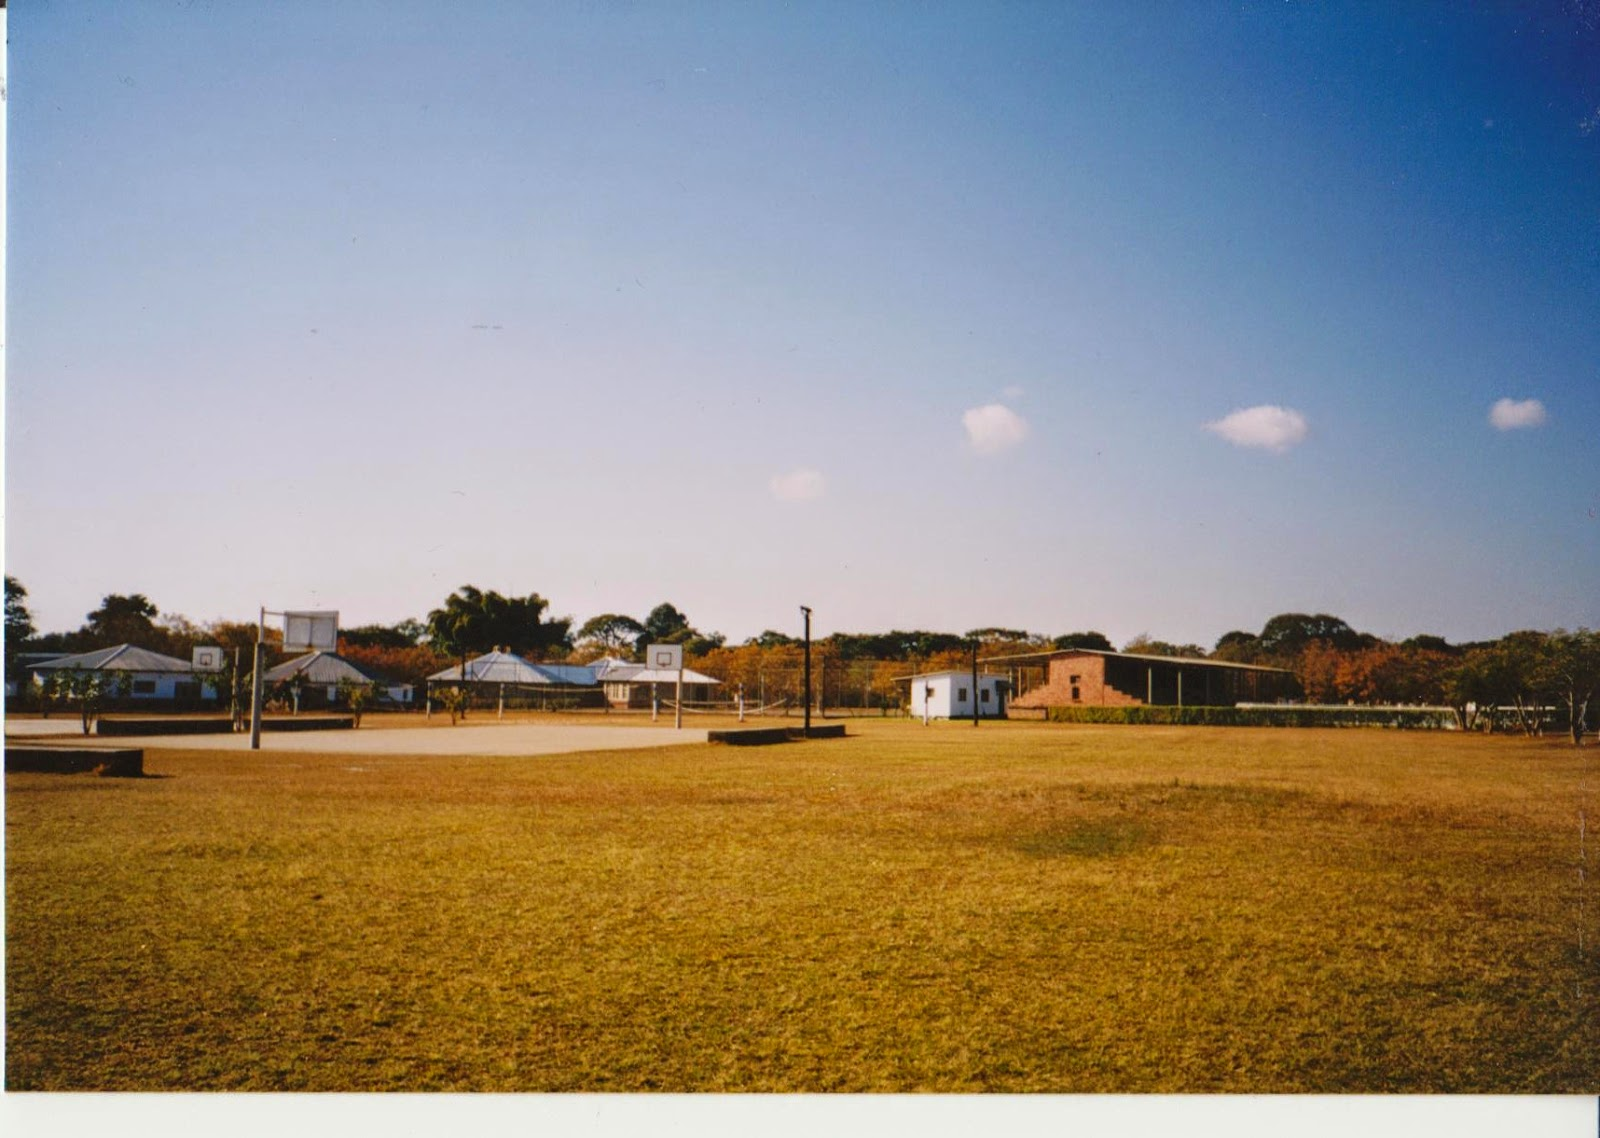 The Sports Field at Chengelo School